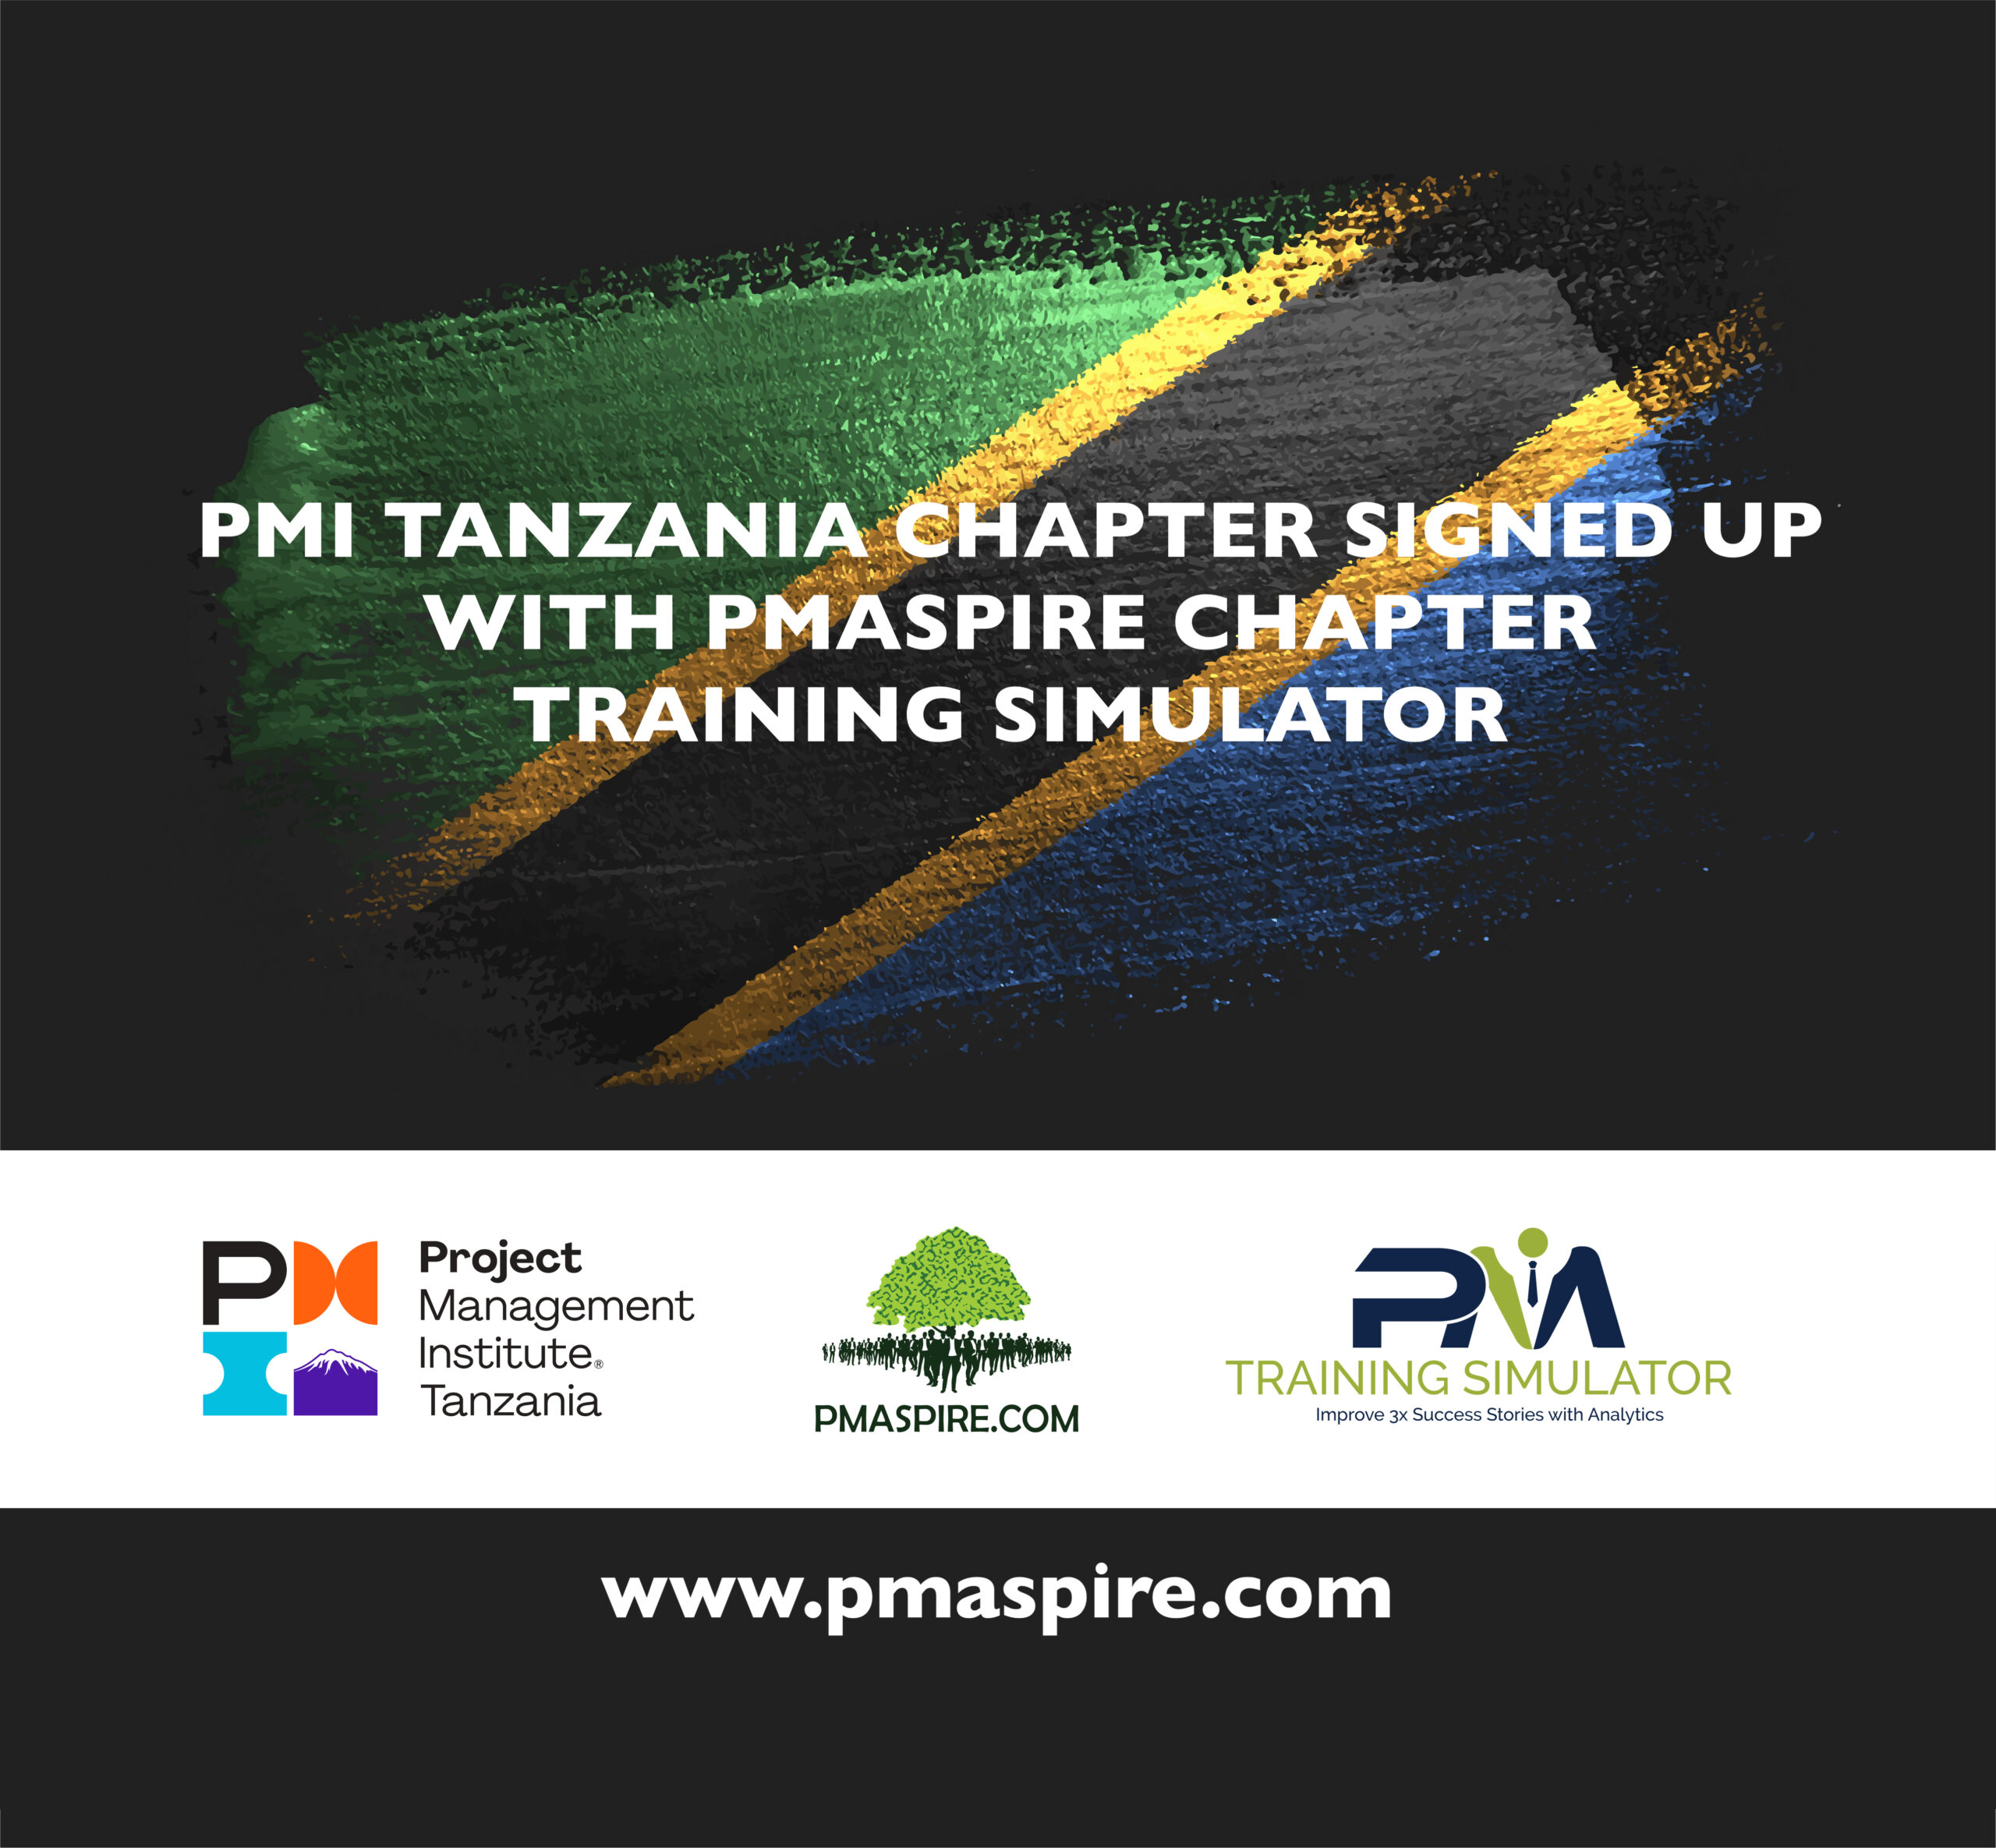 Tanzania Chapter Signed Up with PMaspire